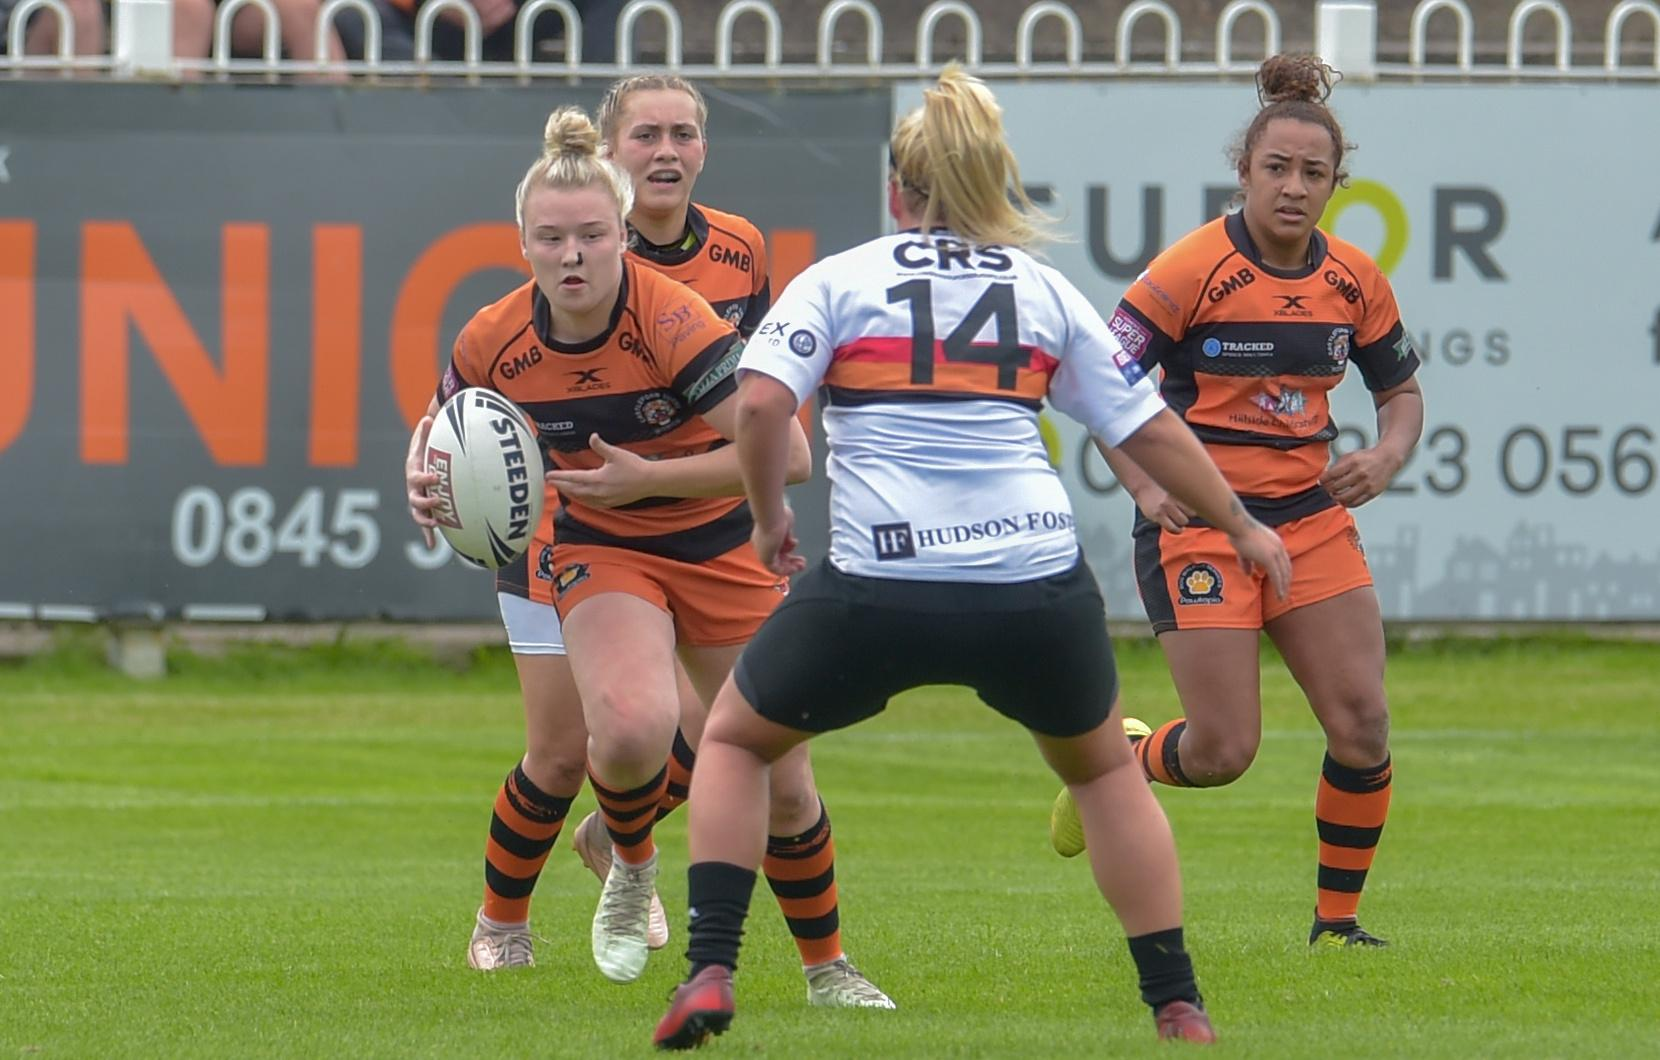 Women's rugby league takes off as Castleford attract record crowds